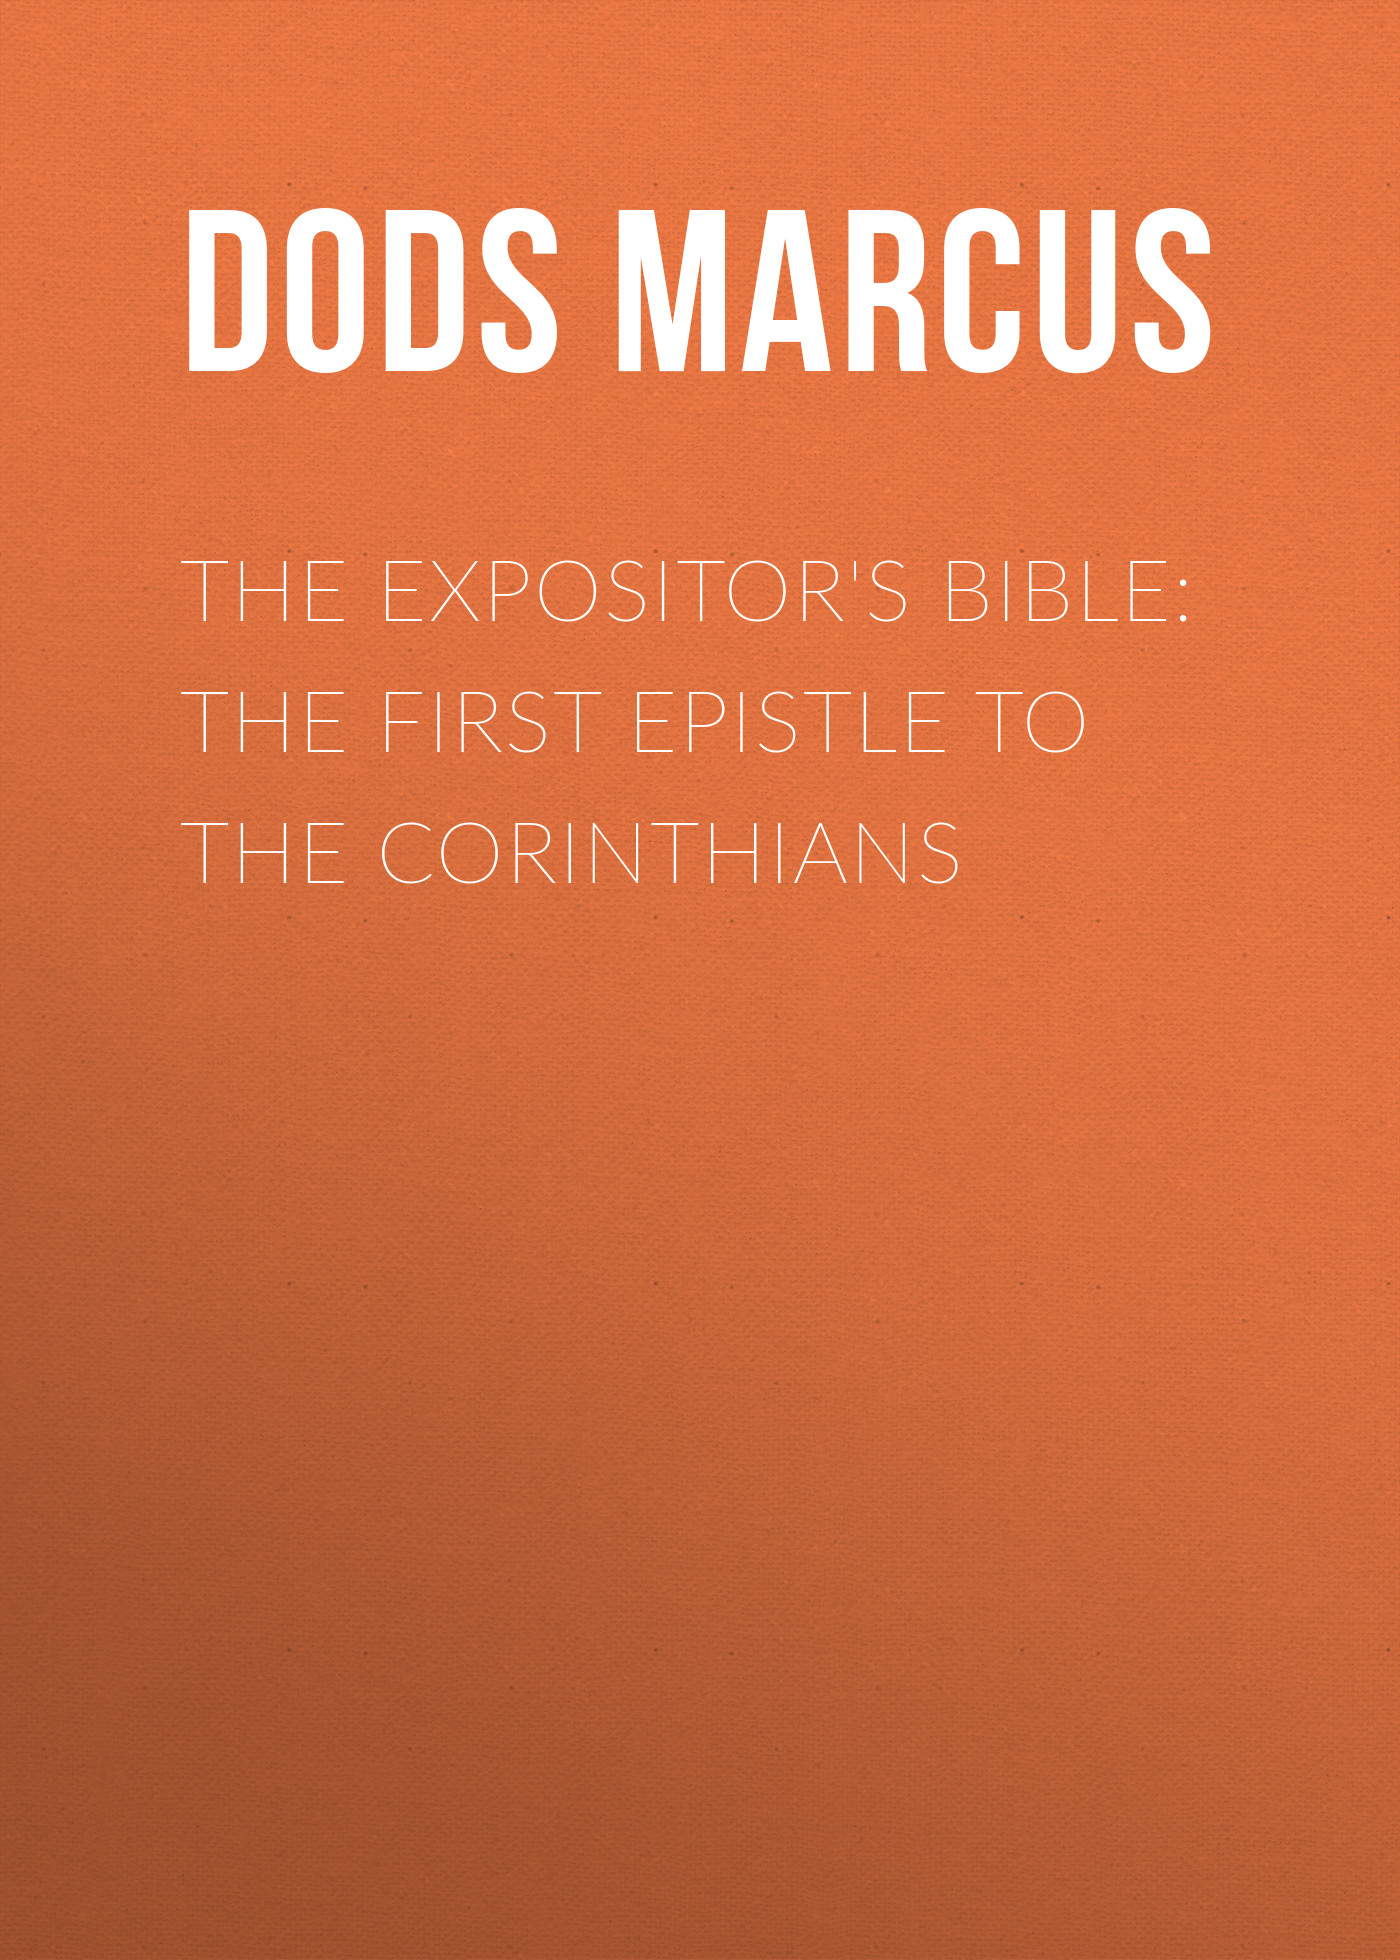 Dods Marcus The Expositor's Bible: The First Epistle to the Corinthians my first bible stories the nativity